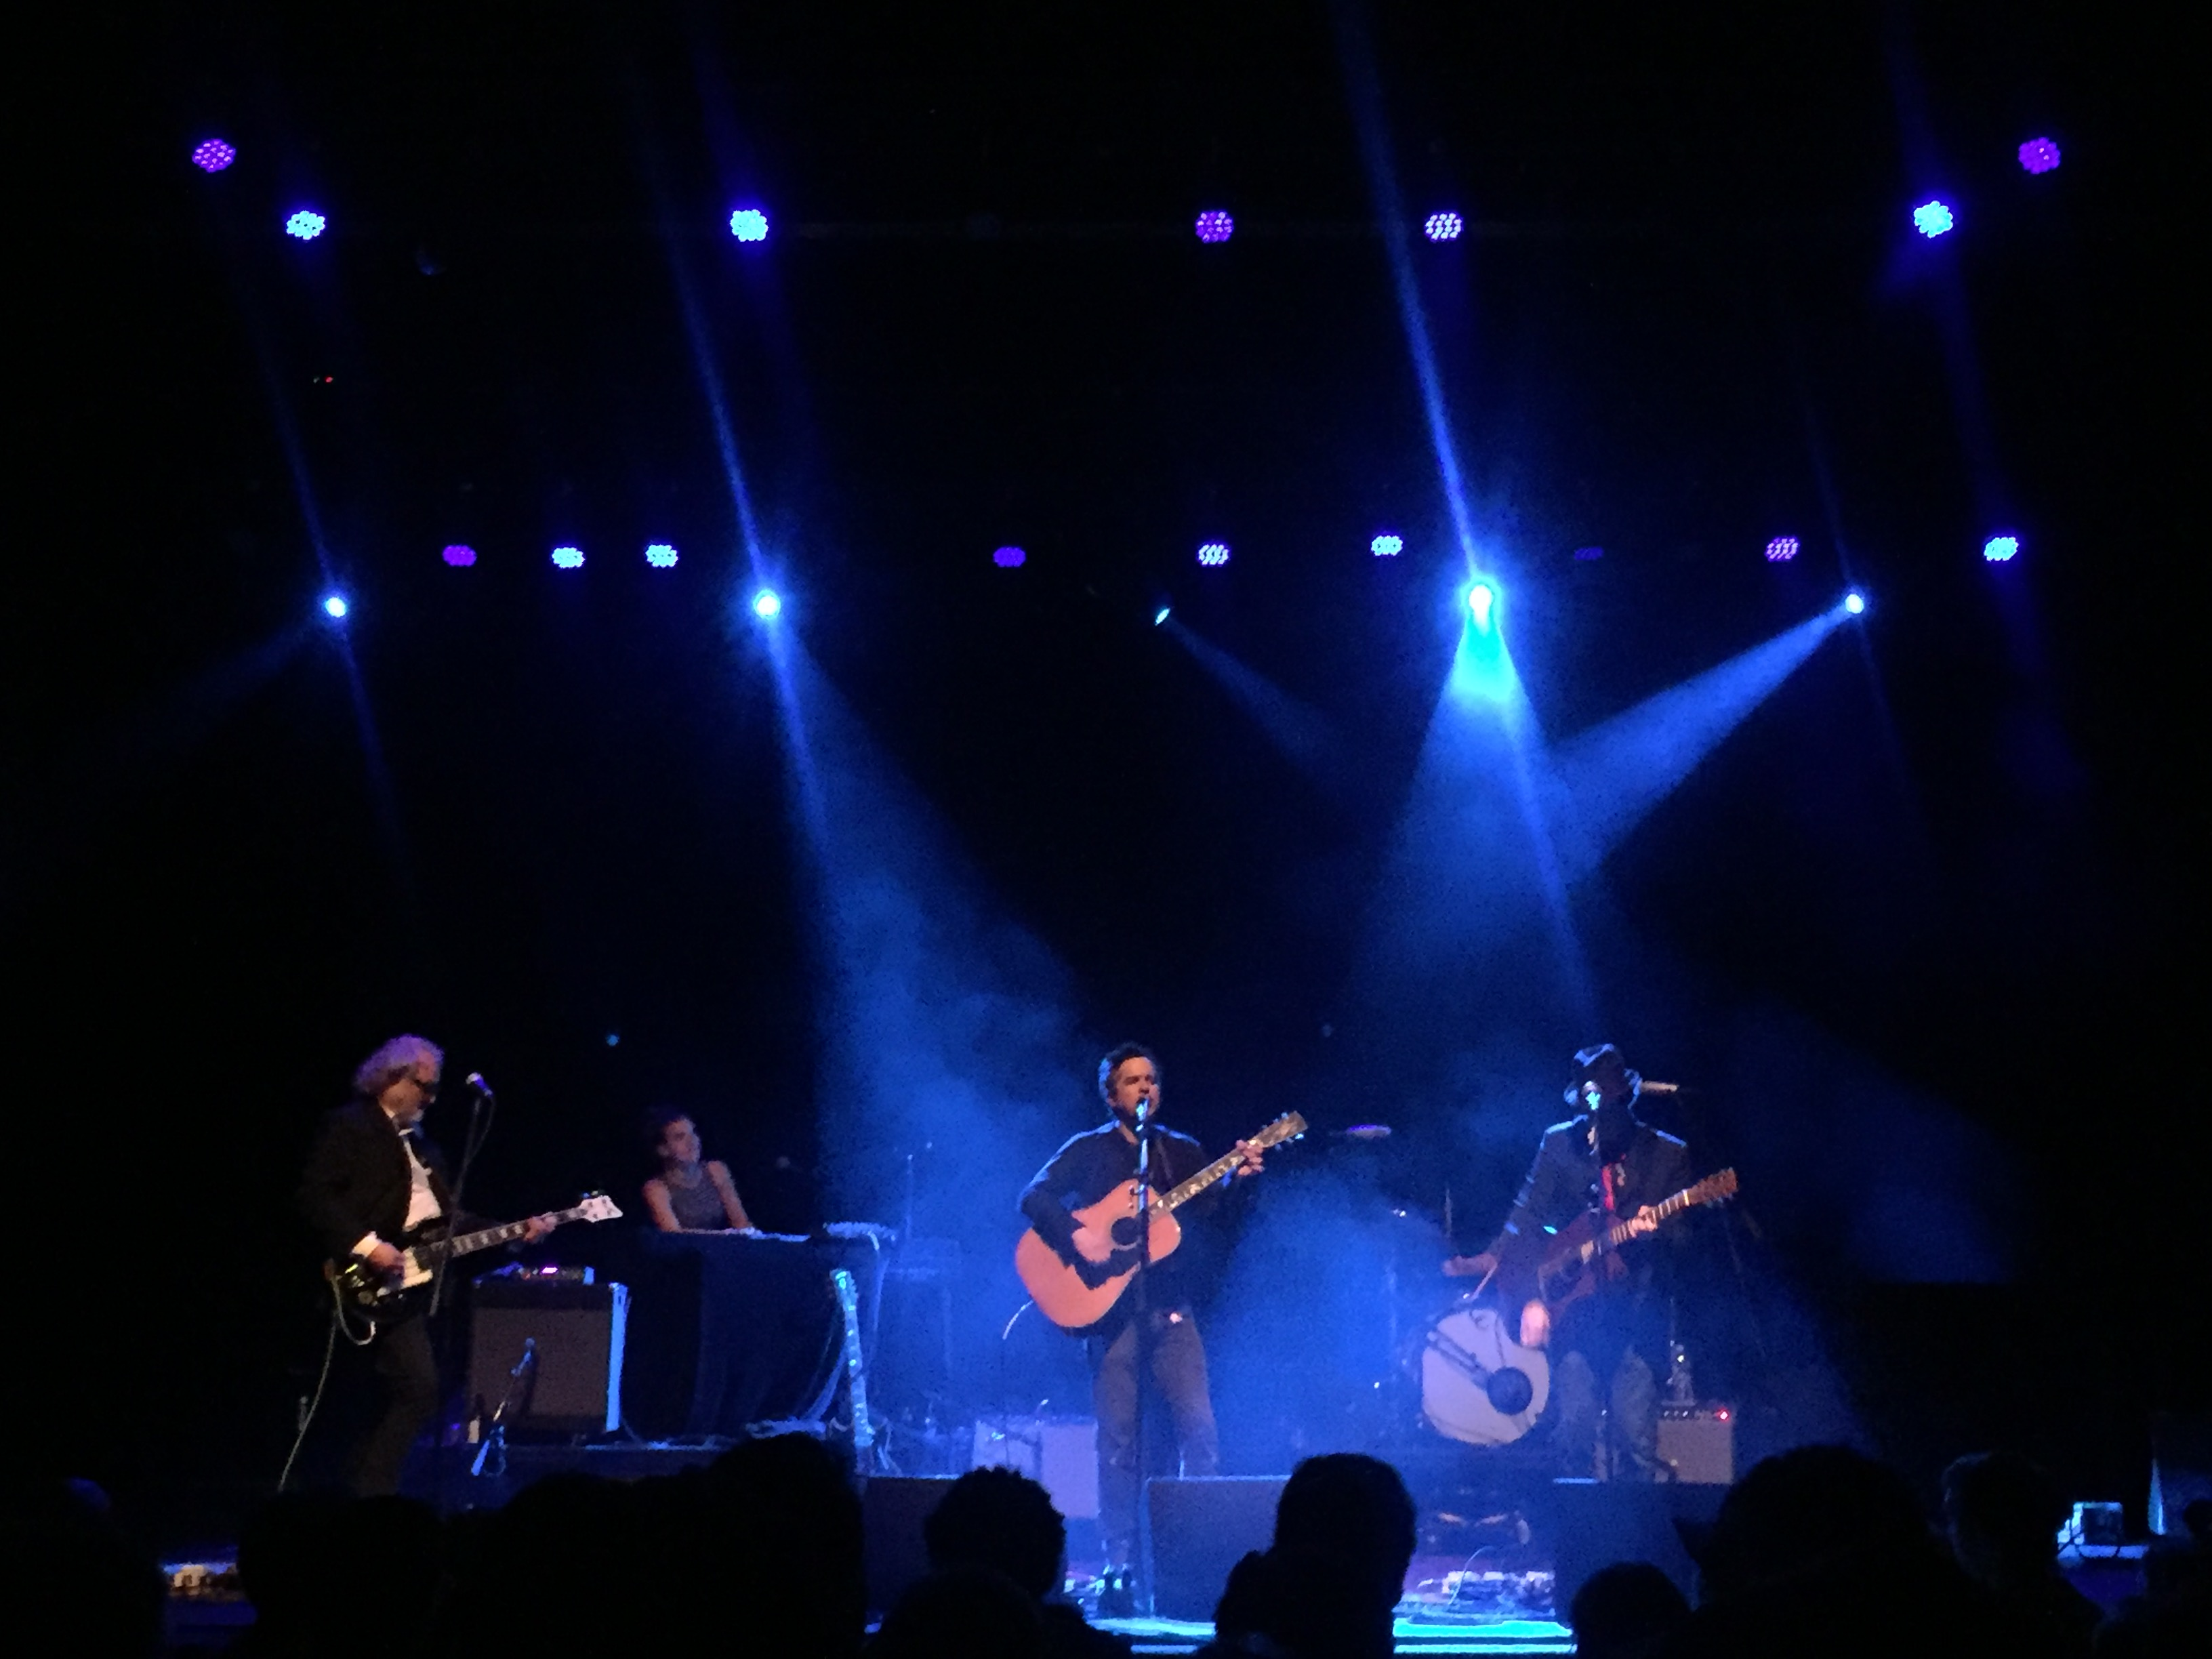 Review / Setlist / Video | M. Ward @ Thalia Hall 6/16/16